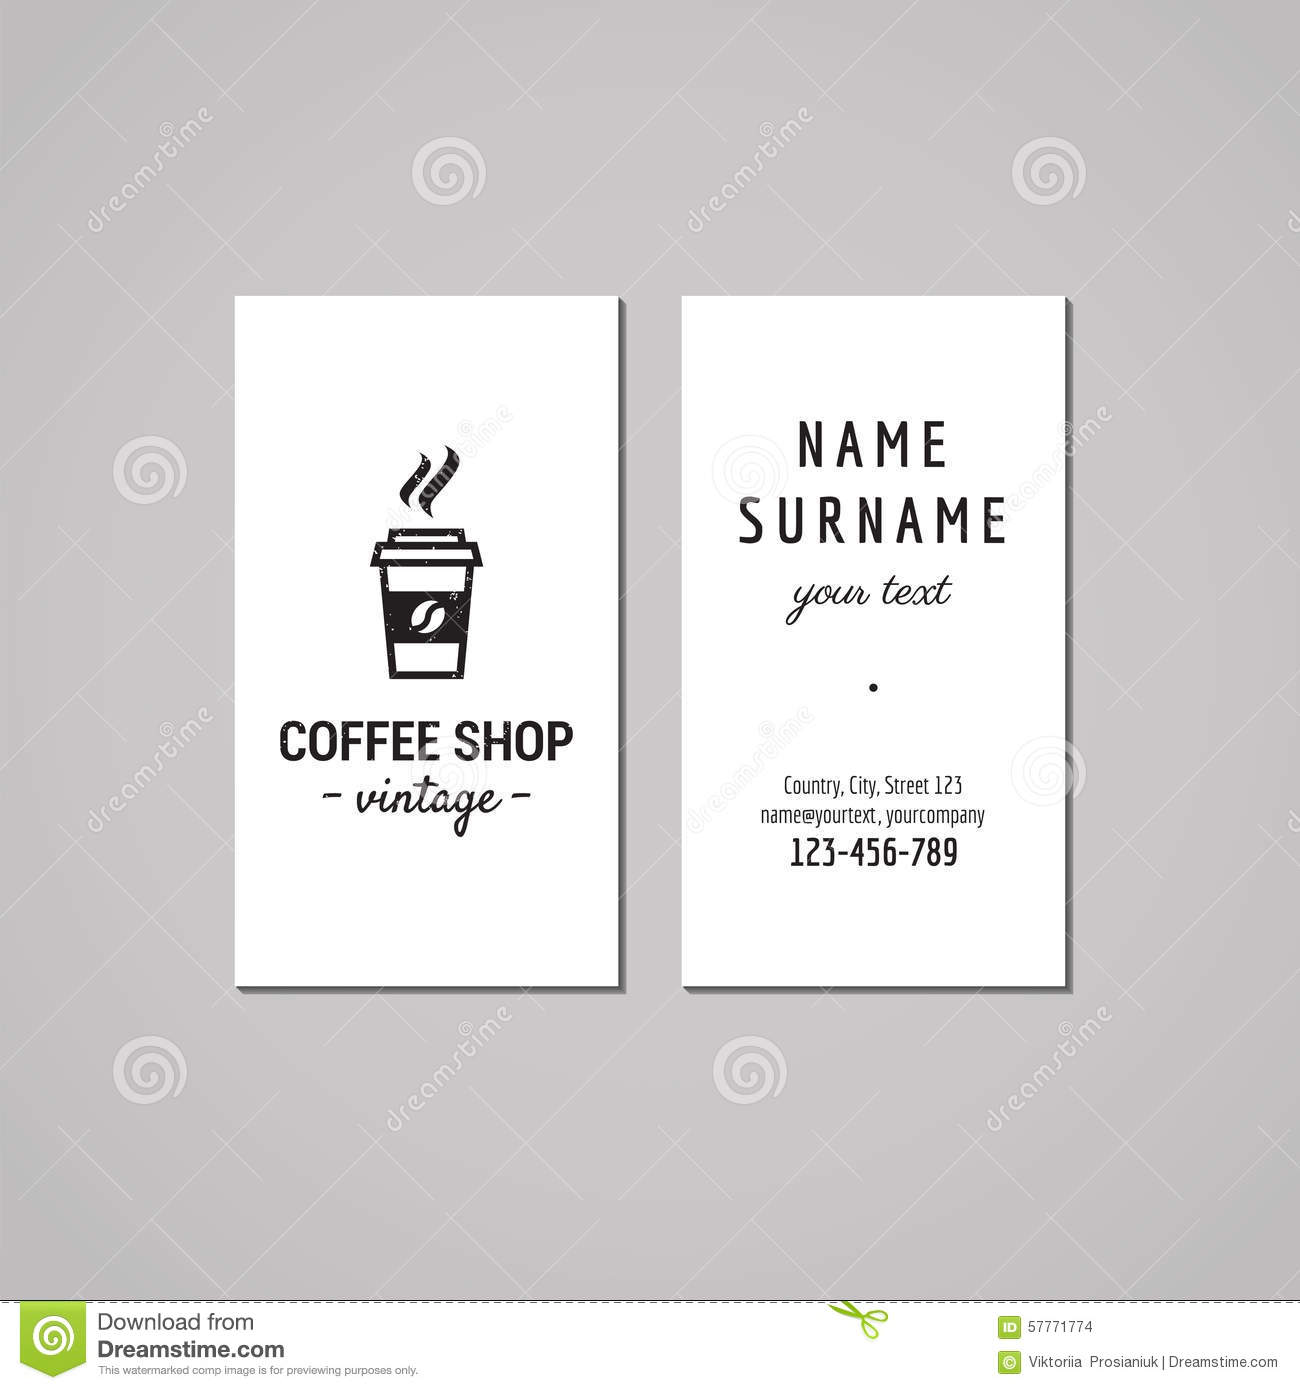 tims coffee shop business analyst Create swot analysis like this template called coffee shop - swot diagram in minutes with smartdraw smartdraw includes swot analysis templates you can customize and.